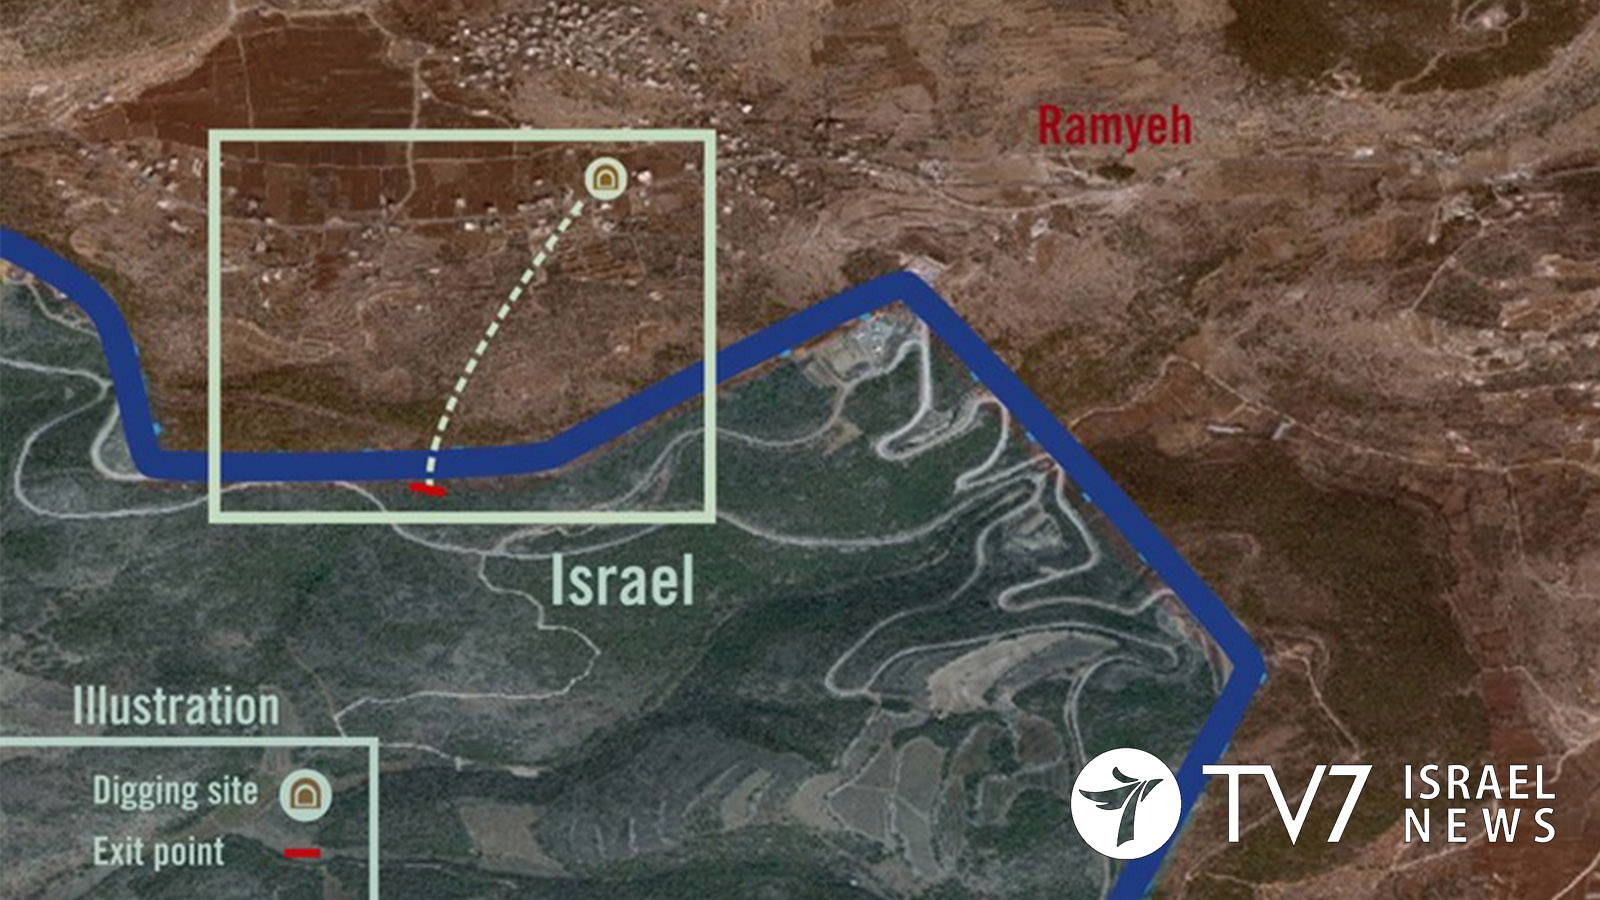 IDF successfully concludes Operation Northern Shield